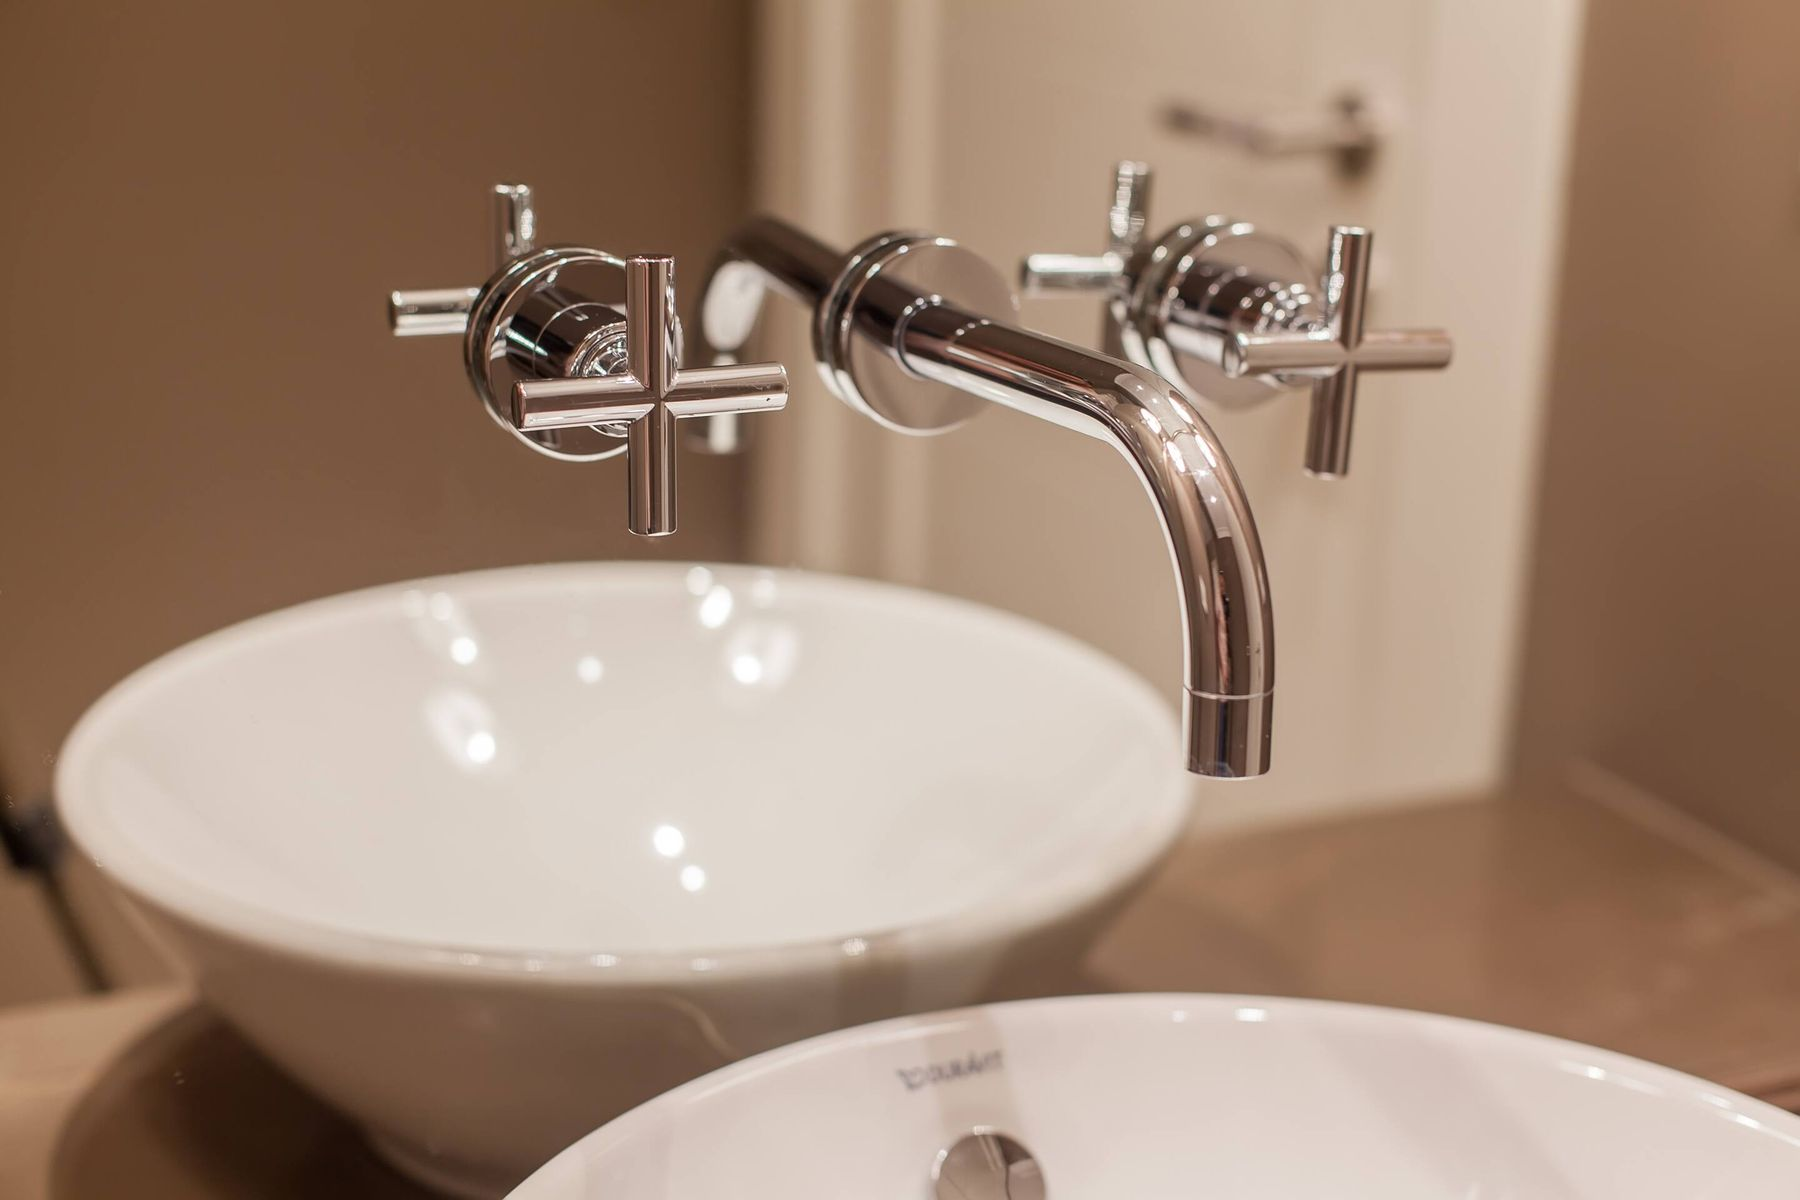 Here's How to get your bathroom fixtures smudge–free